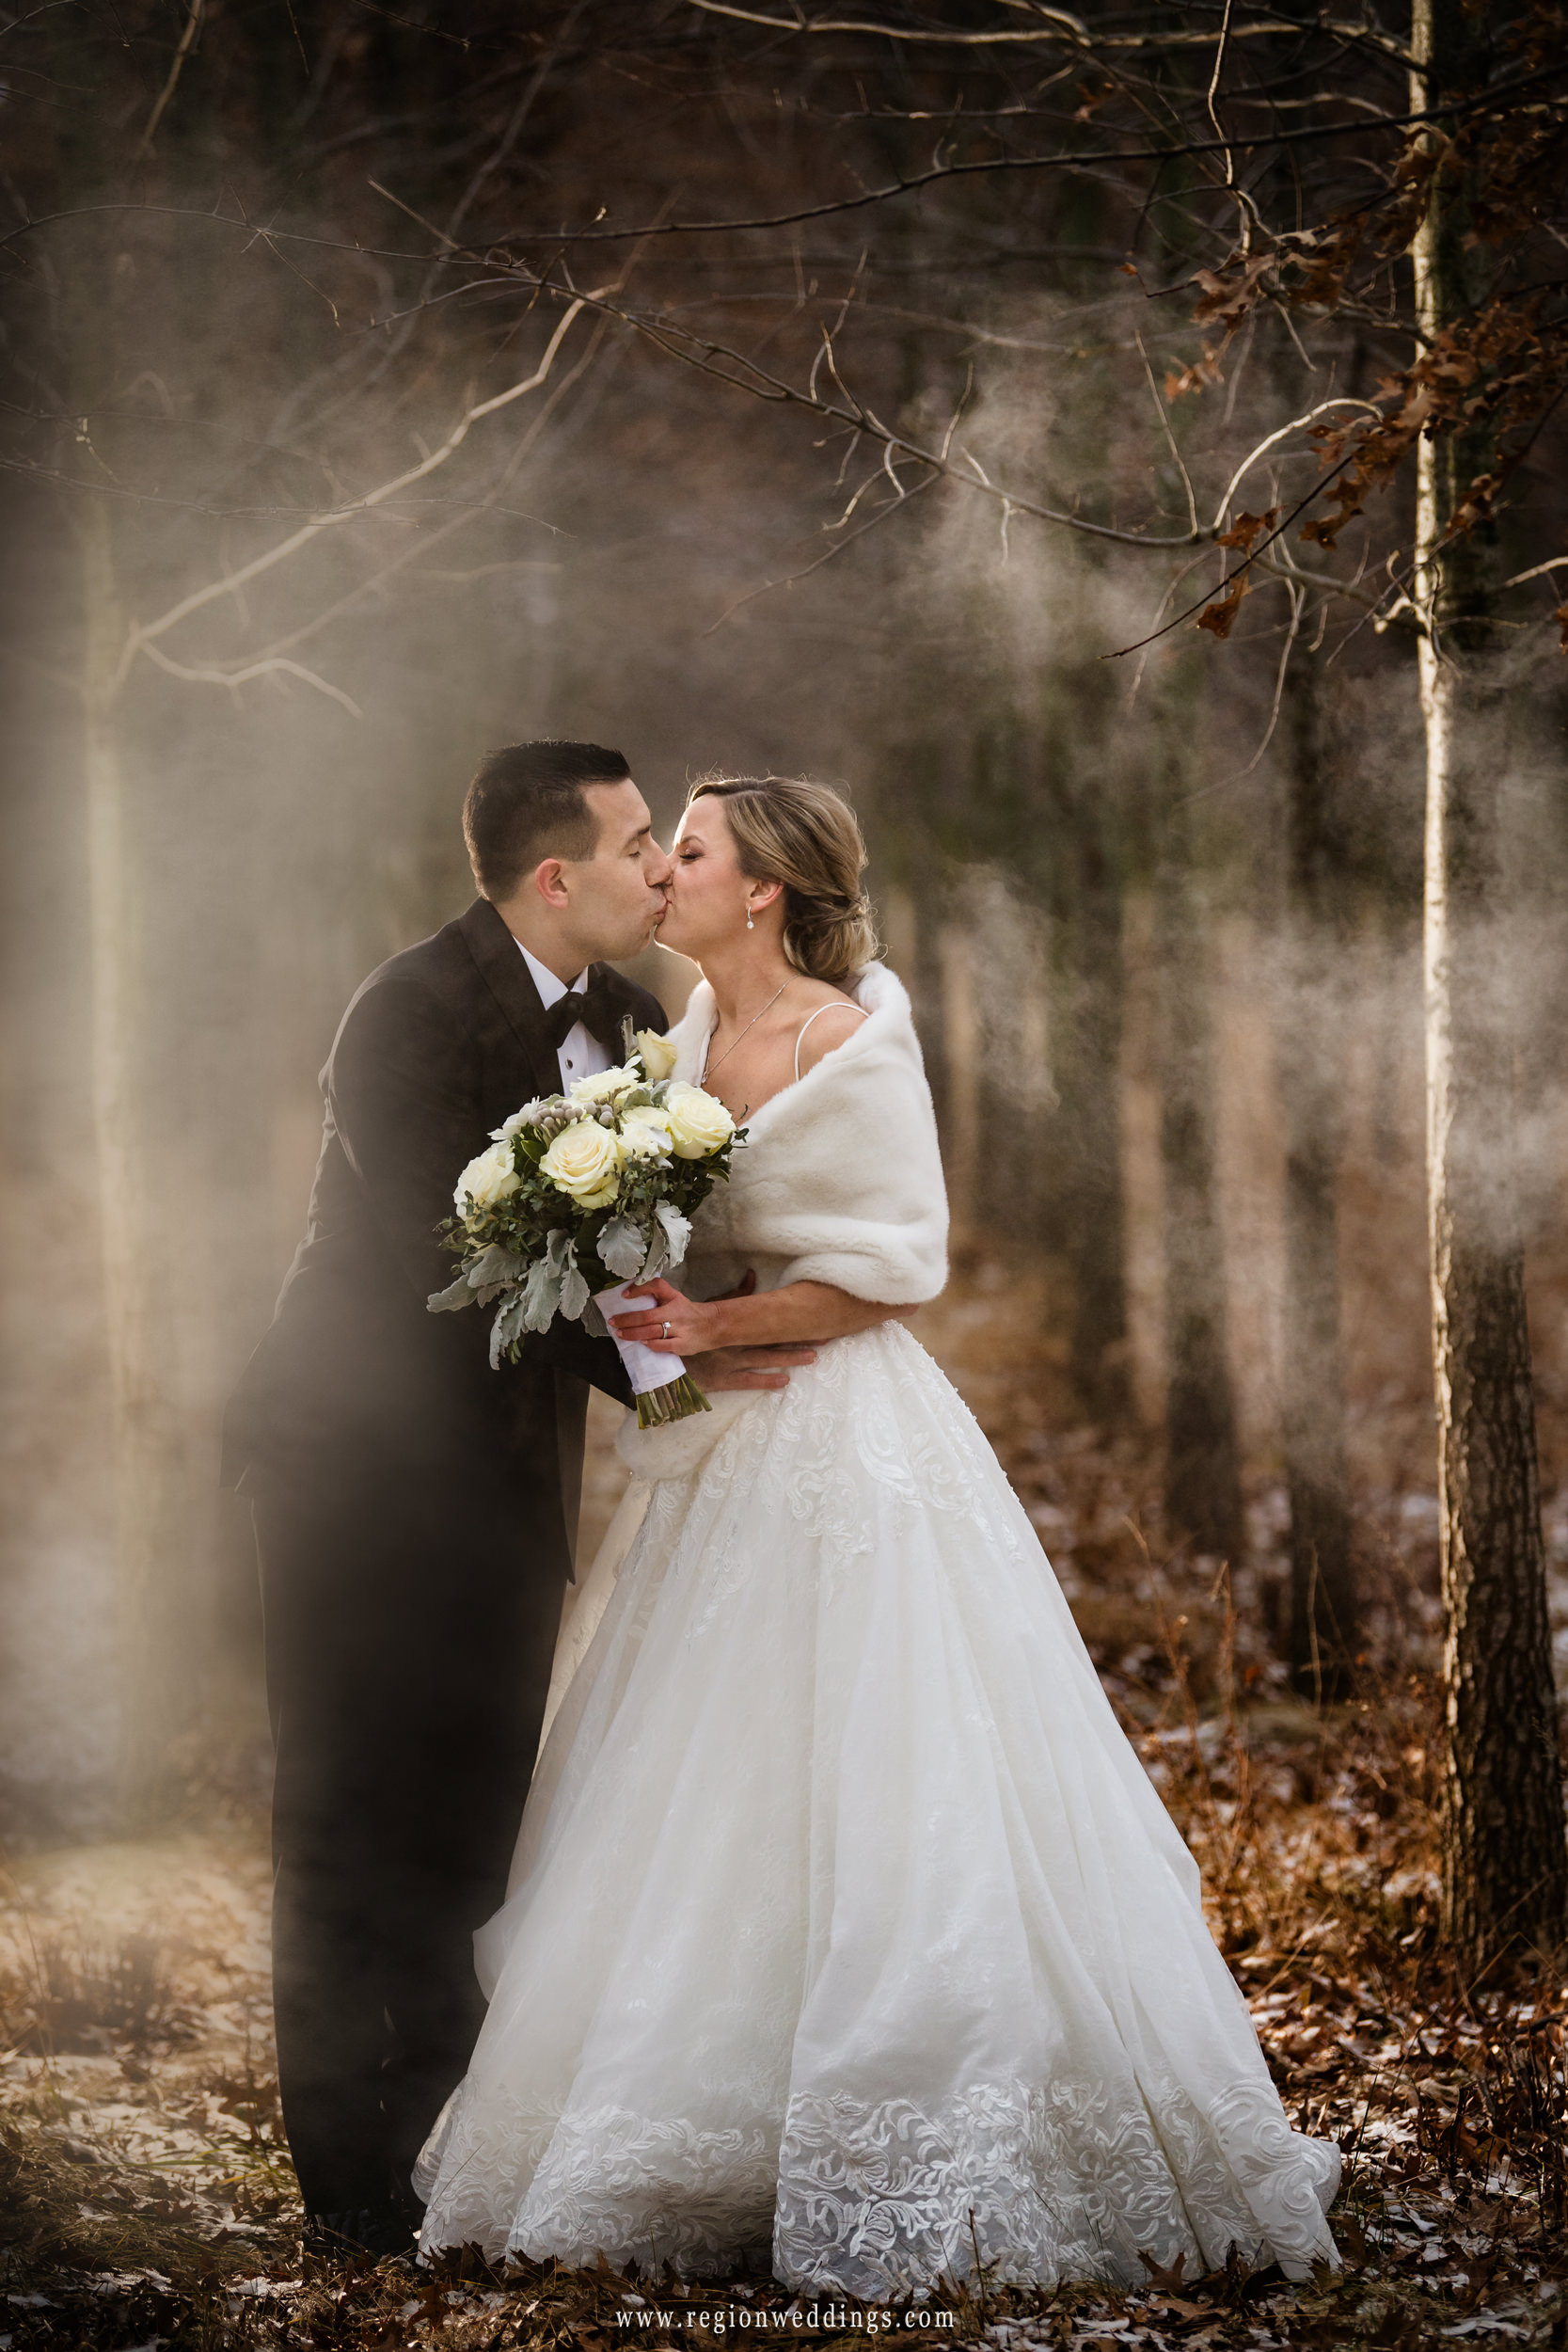 Fog surrounds the bride and groom in this outdoor winter wedding photo.